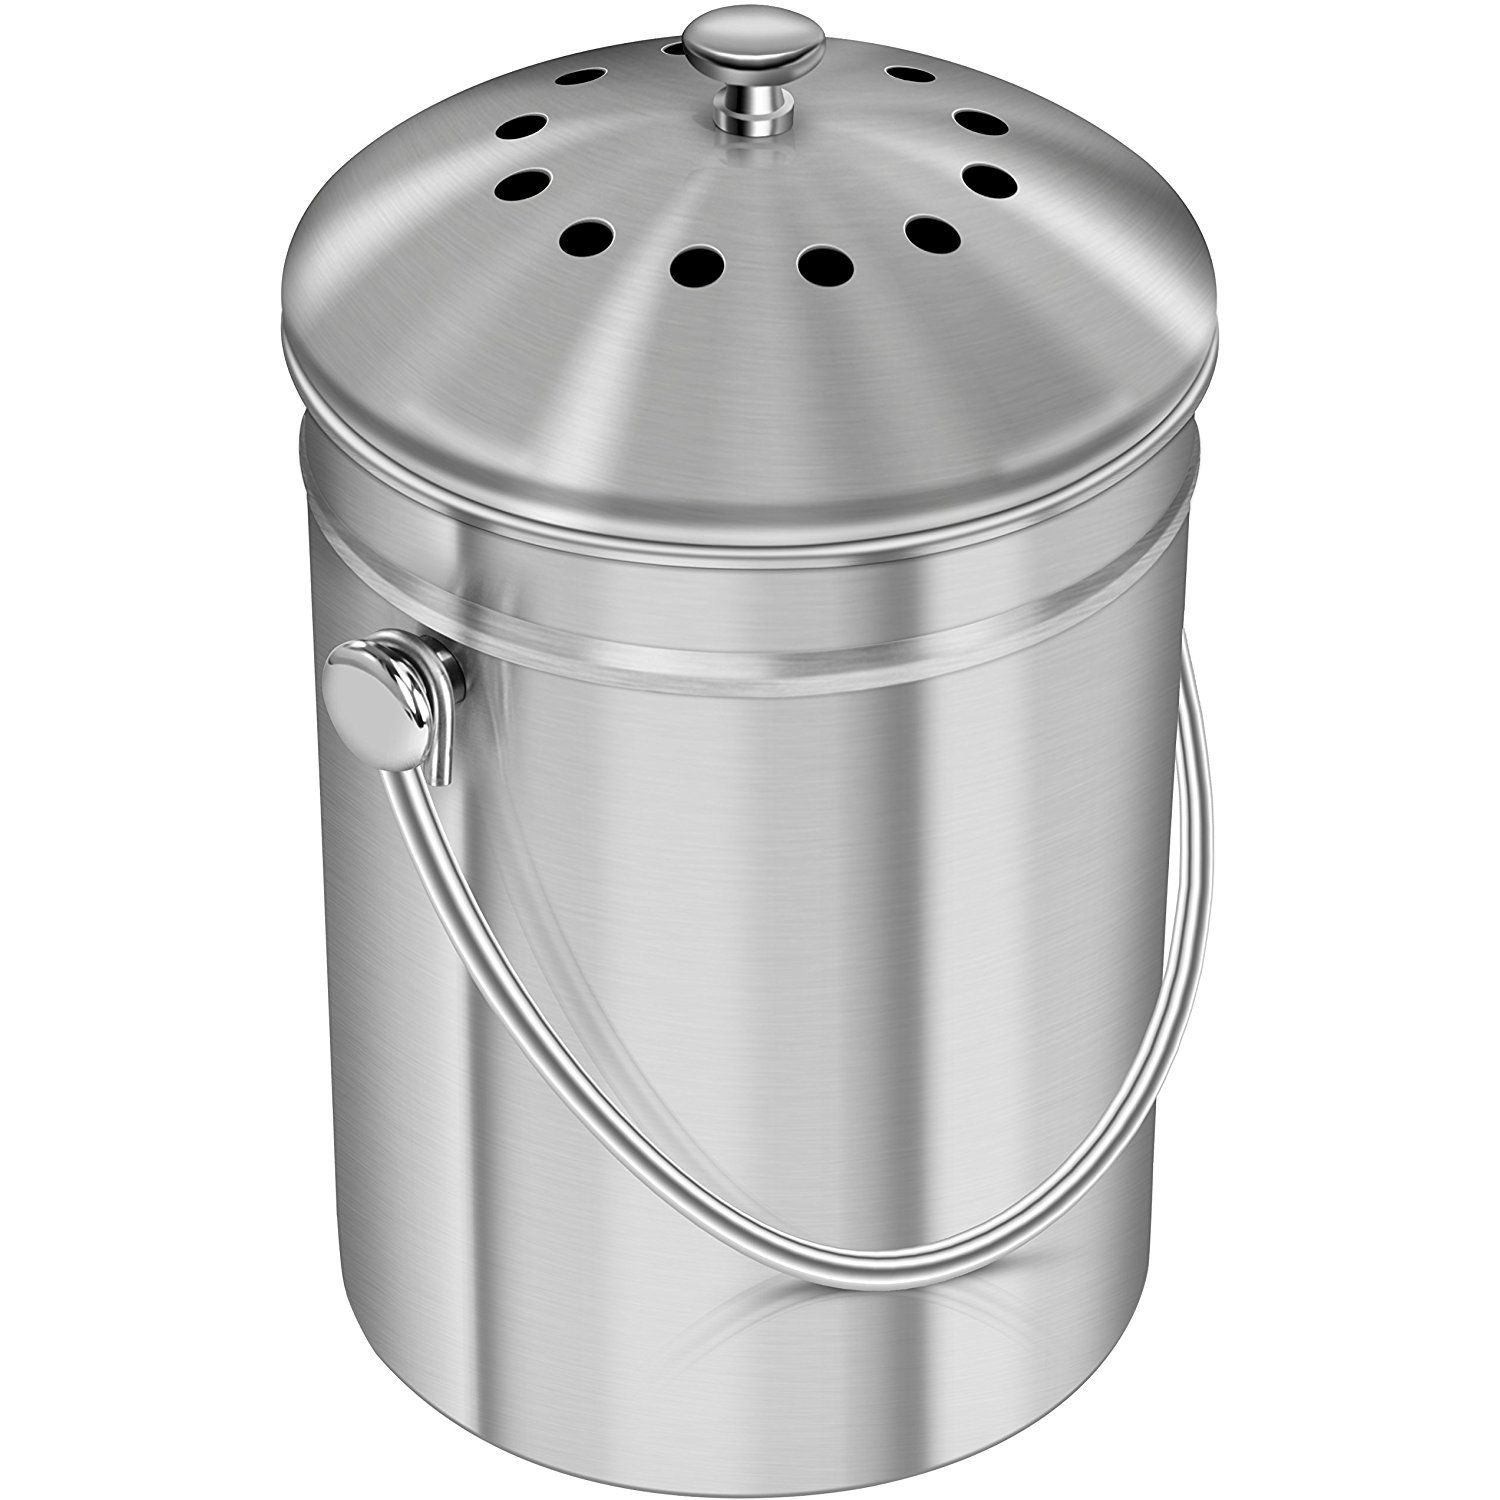 Premium Quality Stainless Steel Compost Bin 1 3 Gallon Includes